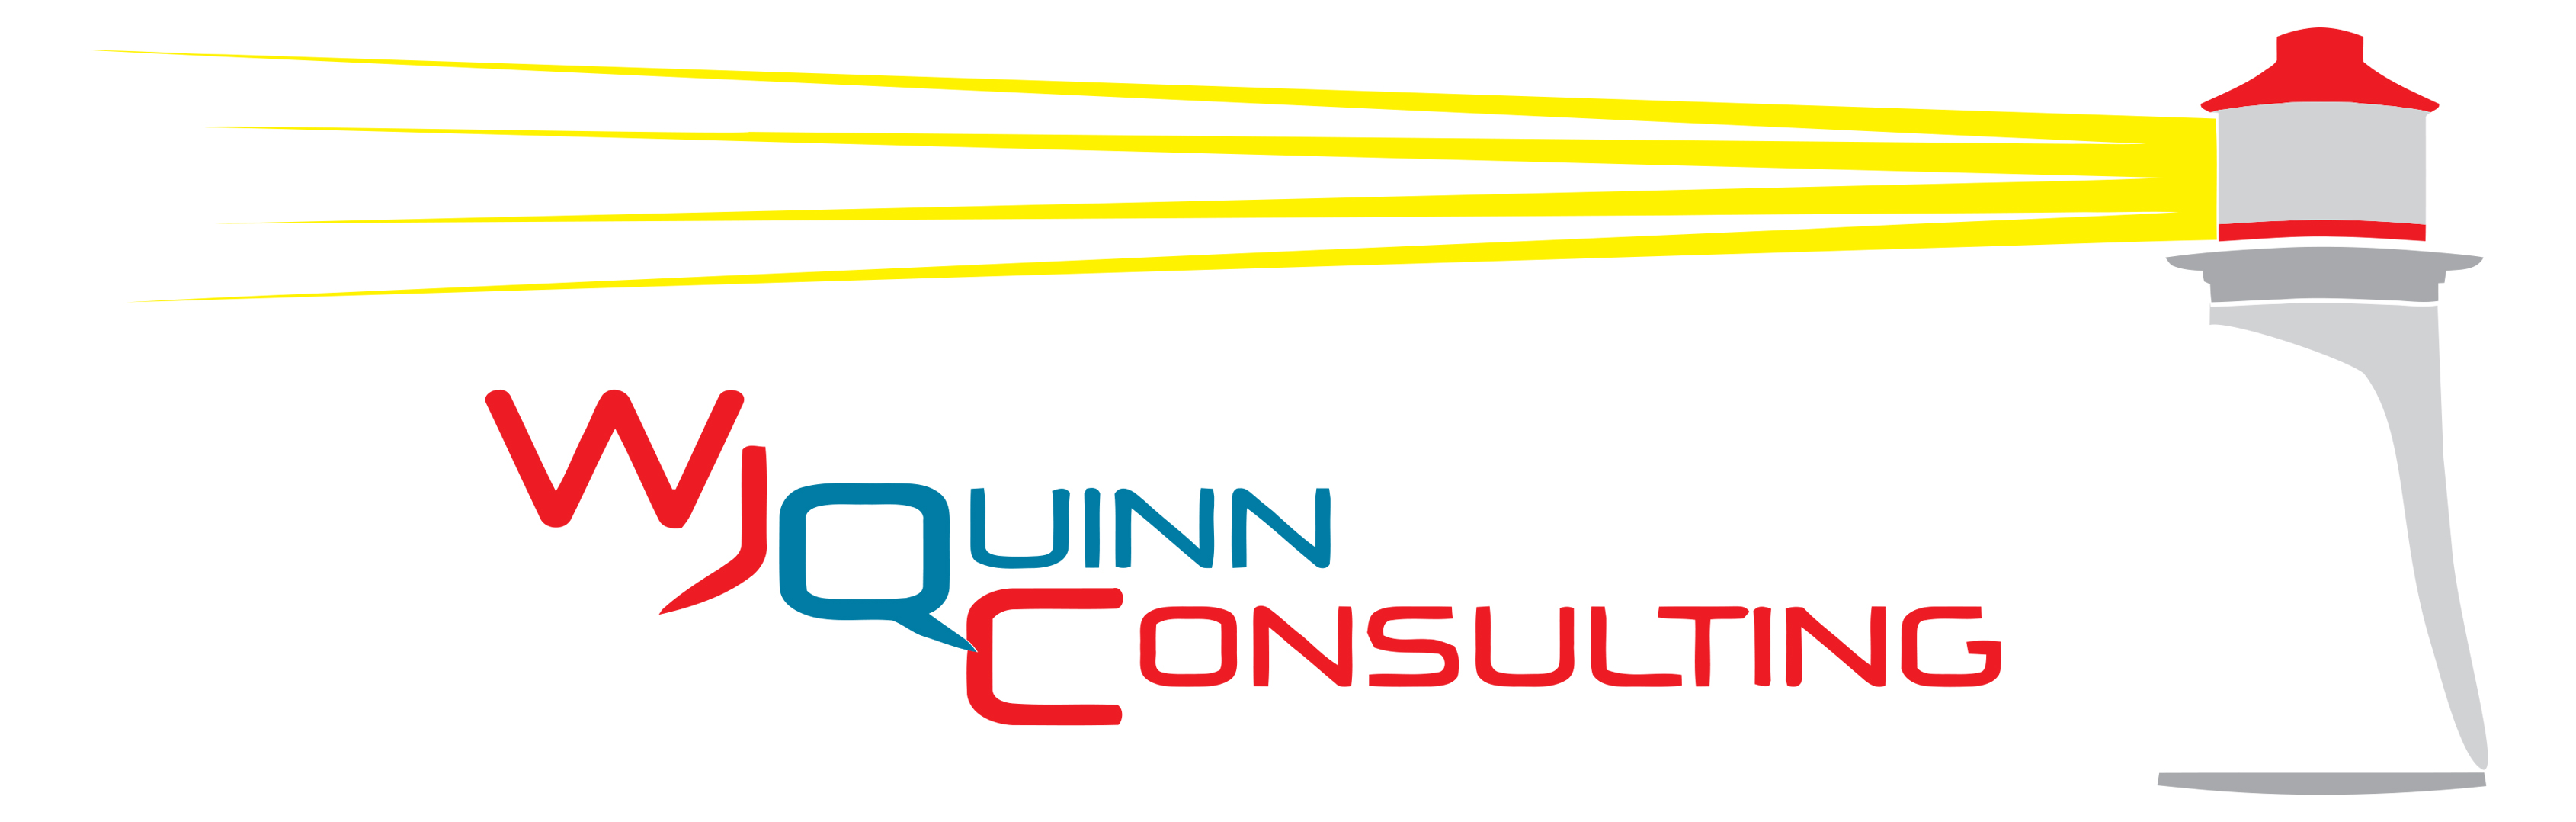 Wendy Quinn Consulting